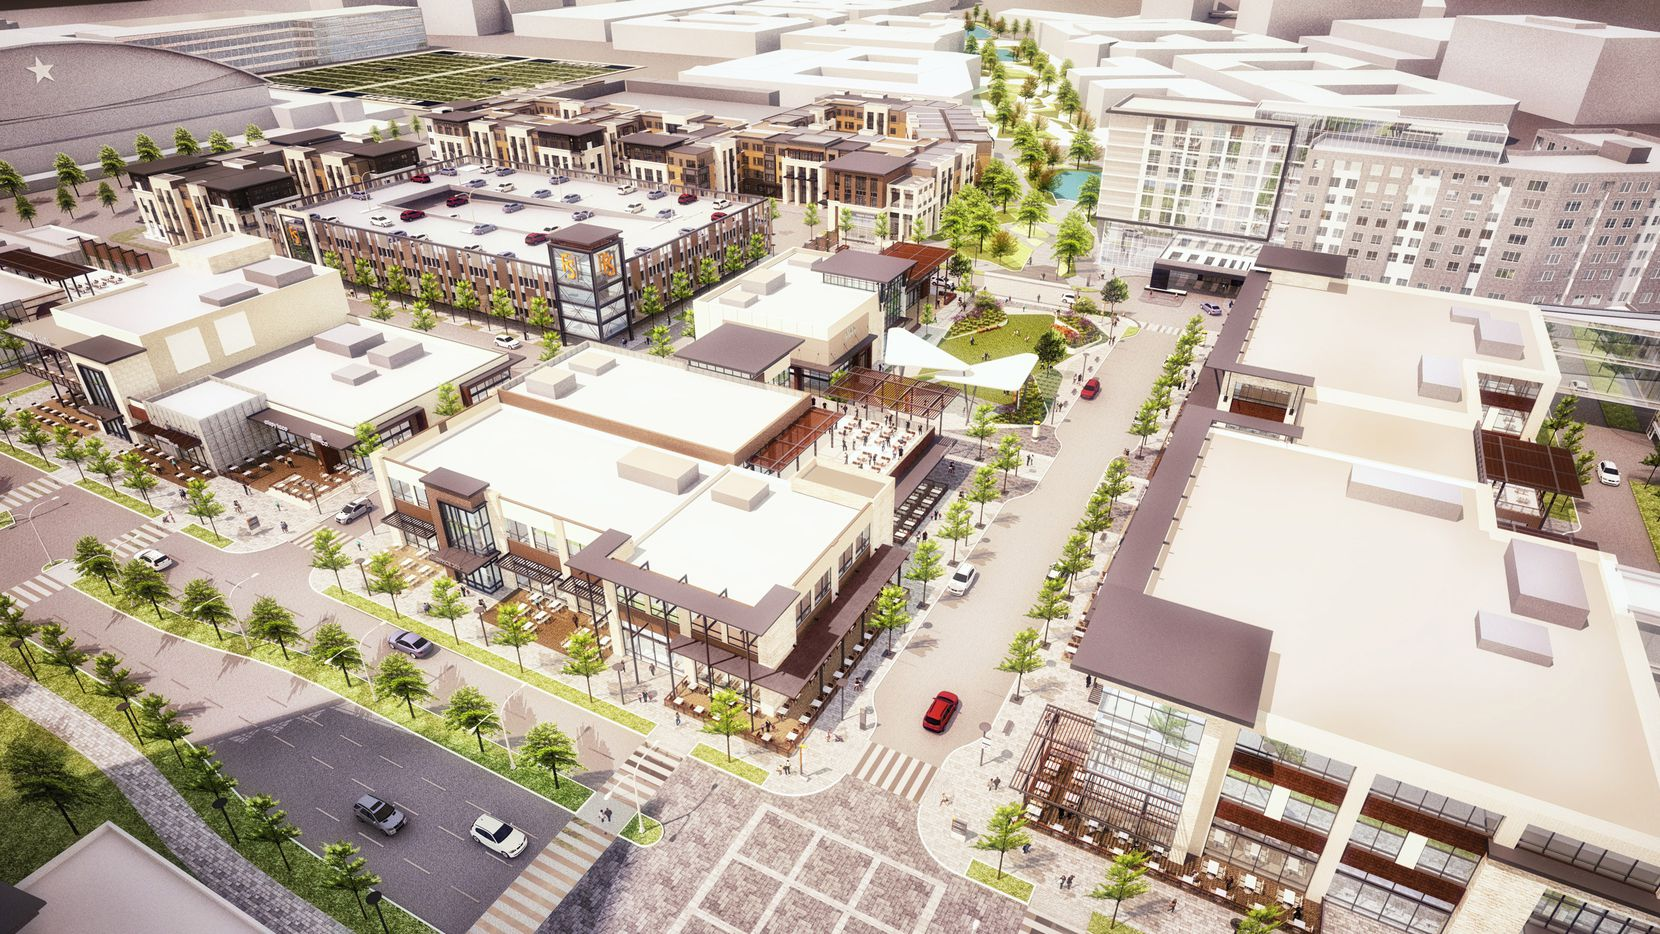 A four-hotel complex in the works in $1 billion Frisco Station project and will be located in the mixed-use Hub portion of the development.